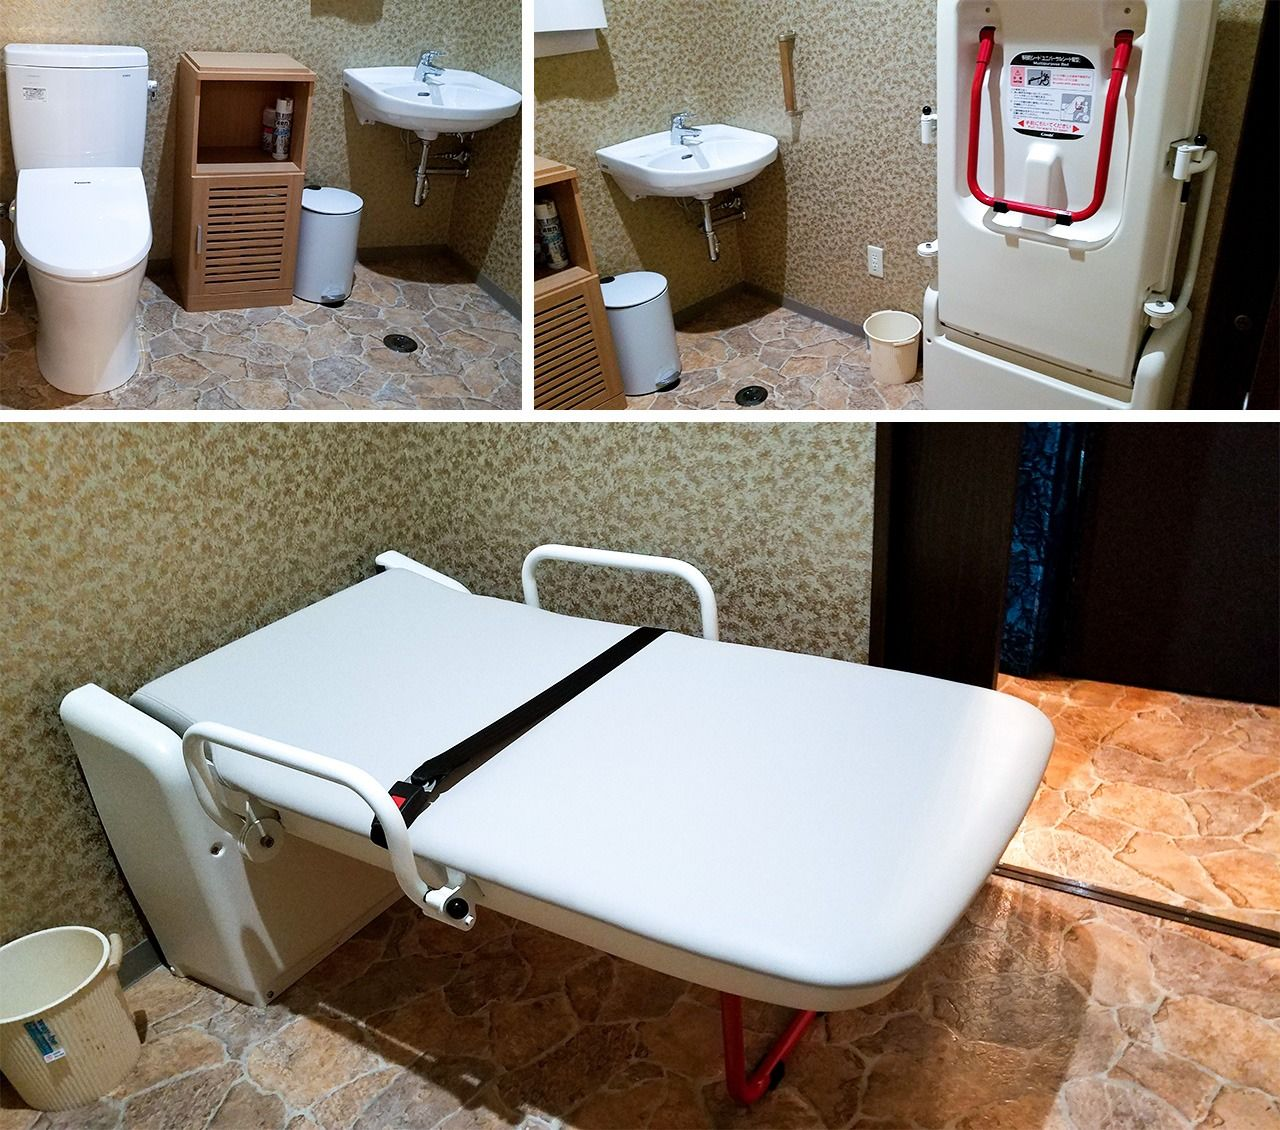 Ryūgūjō's restroom is wheelchair accessible and has a foldable bed for changing adult diapers.